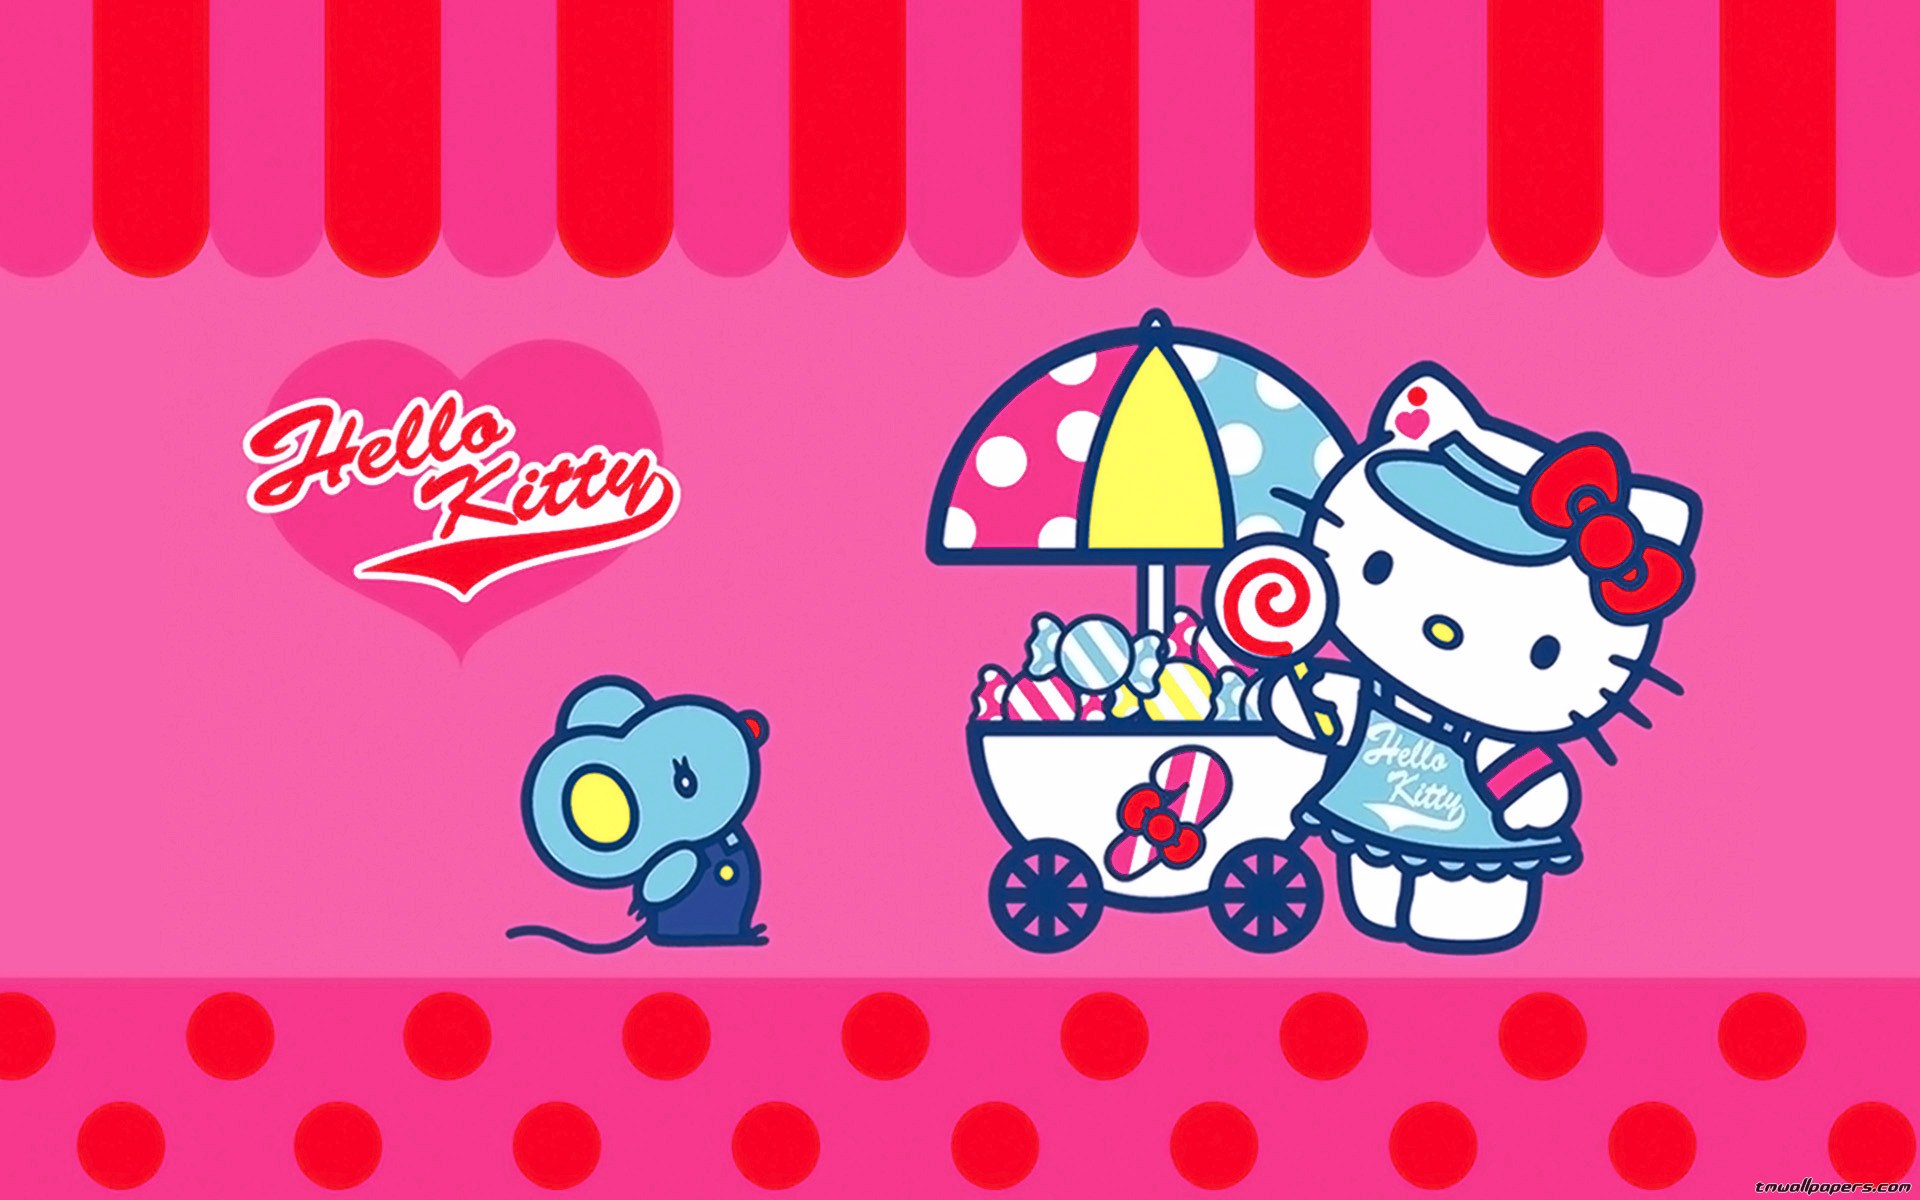 TM.Wallpapers Wide wallpapers e HD wallpapers - Hello Kitty wallpapers